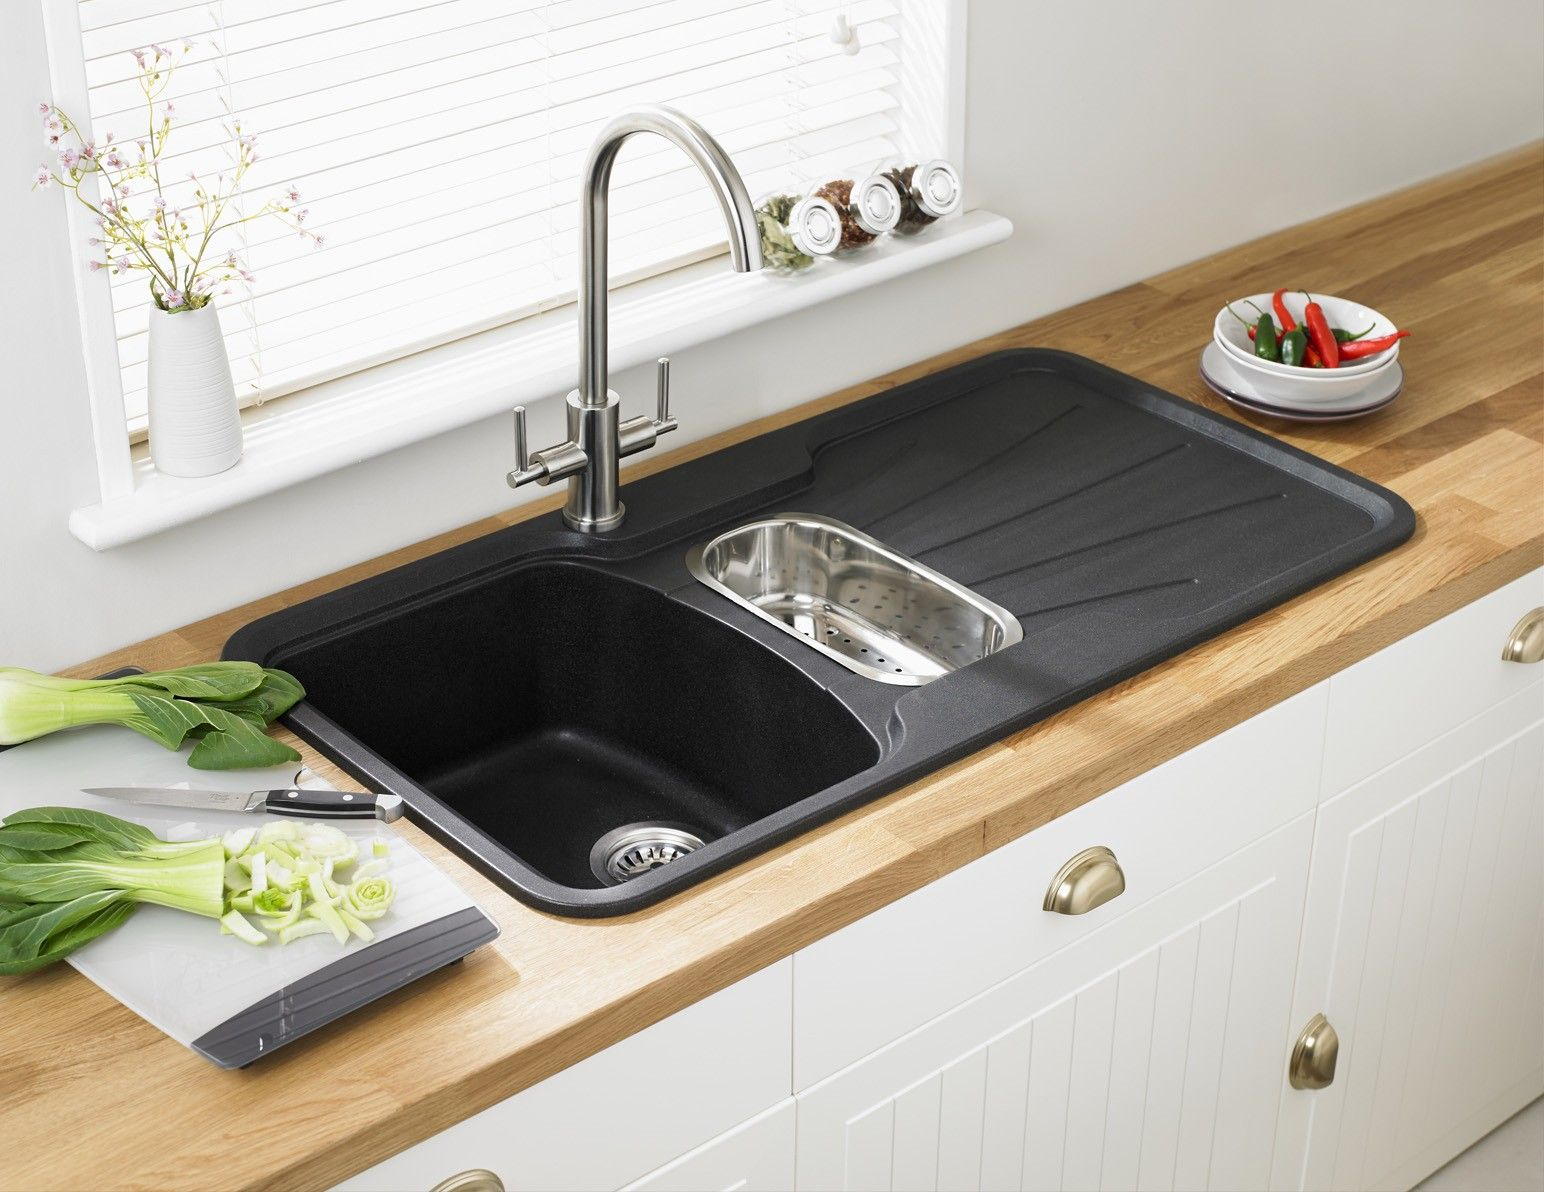 Kitchen Sinks Home Depot Porcelain Kitchen Sink Sink With Drainboard Best Kitchen Sinks Composite Kitchen Sinks Kitchen Sink Drainboard